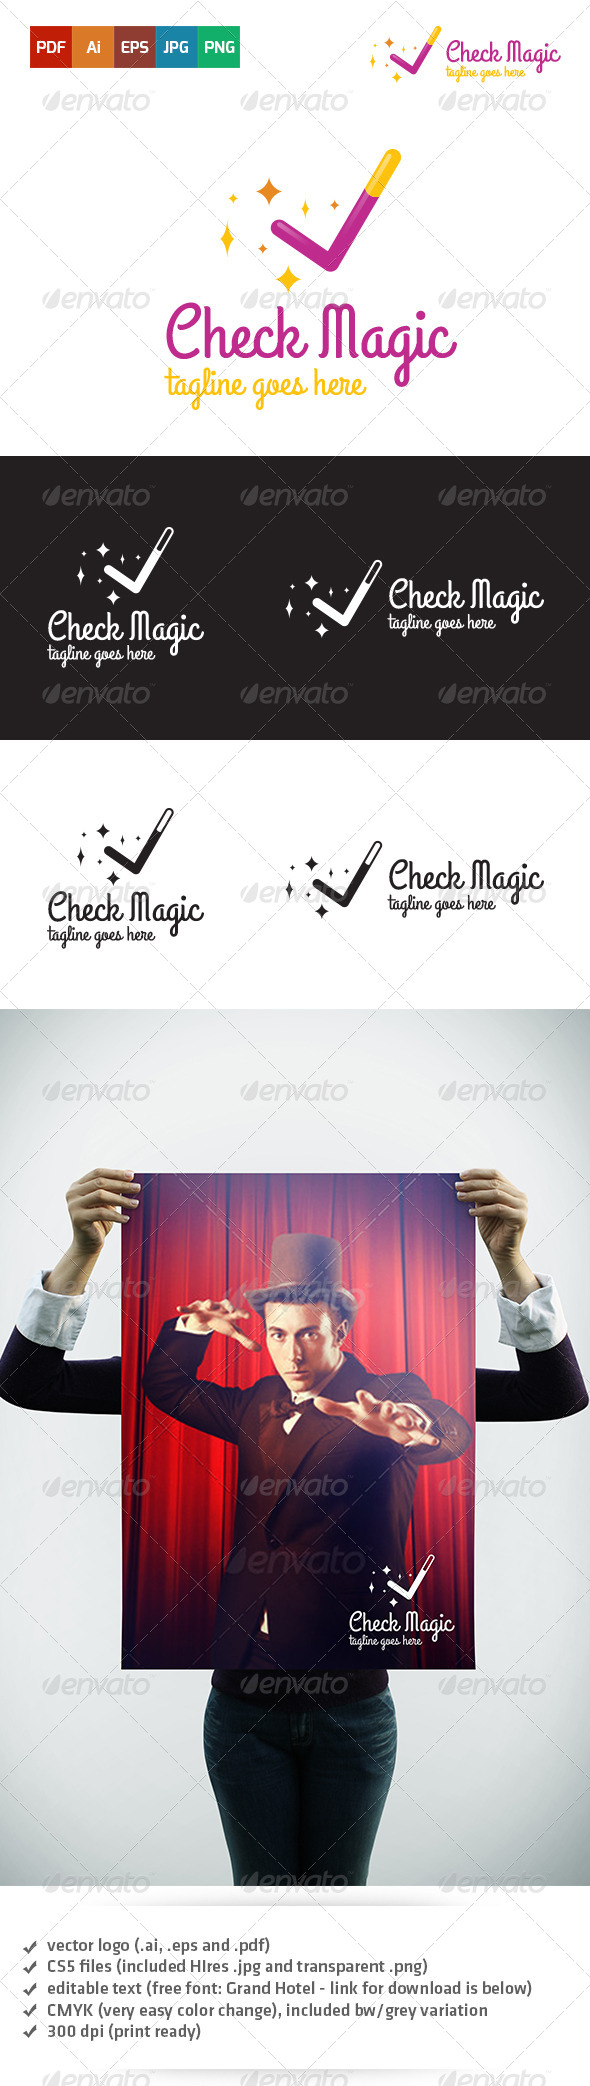 GraphicRiver Check Magic Logo 5359194